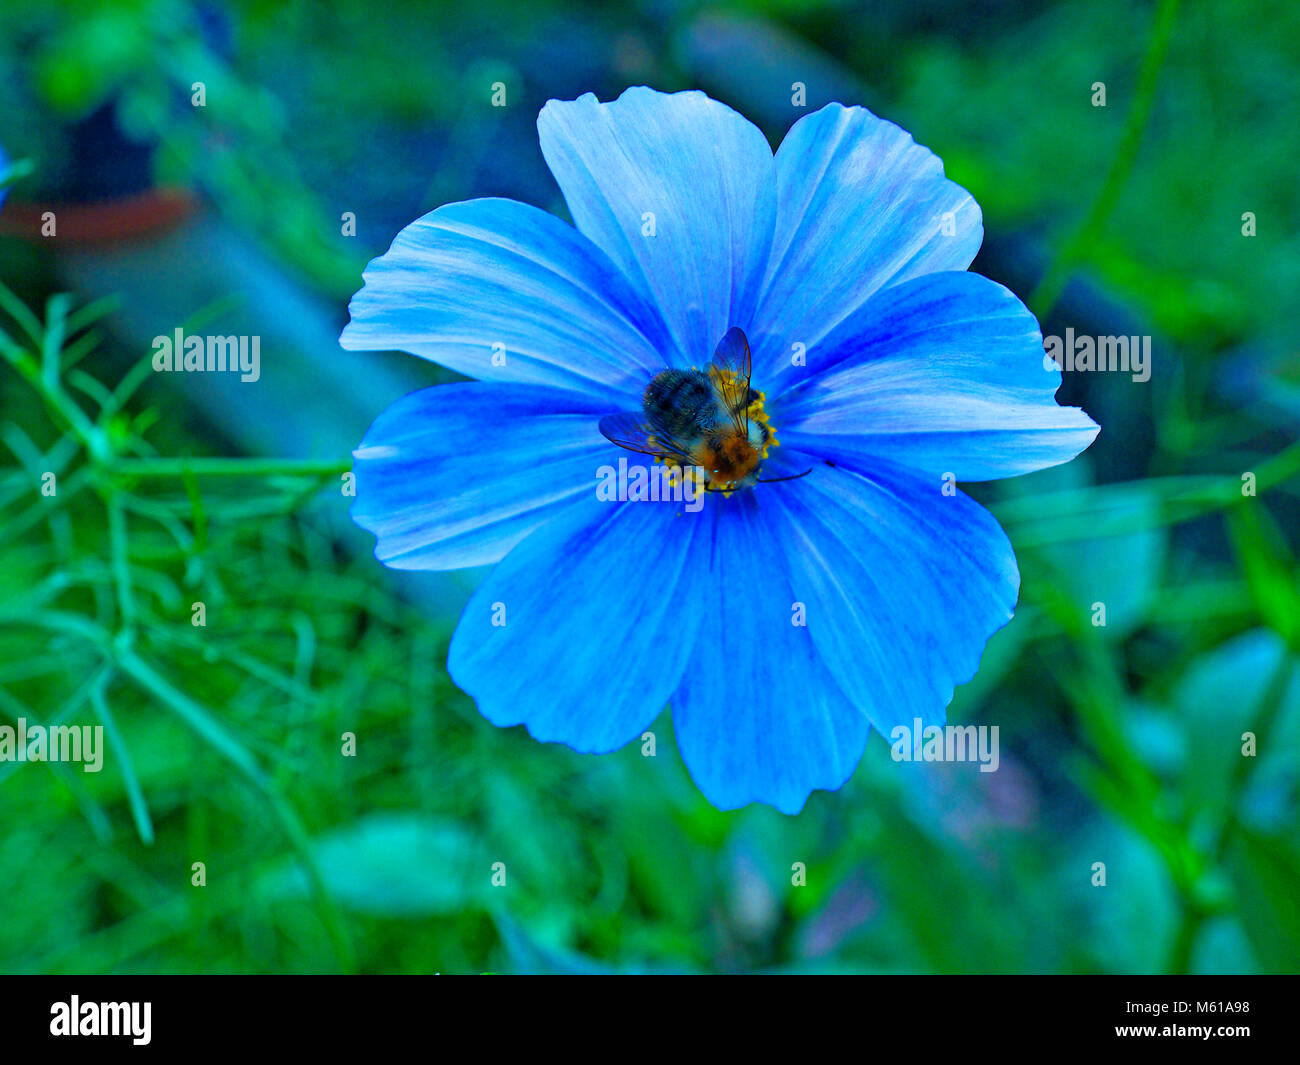 Honey bee sucking nectar from a cosmos flower - Stock Image